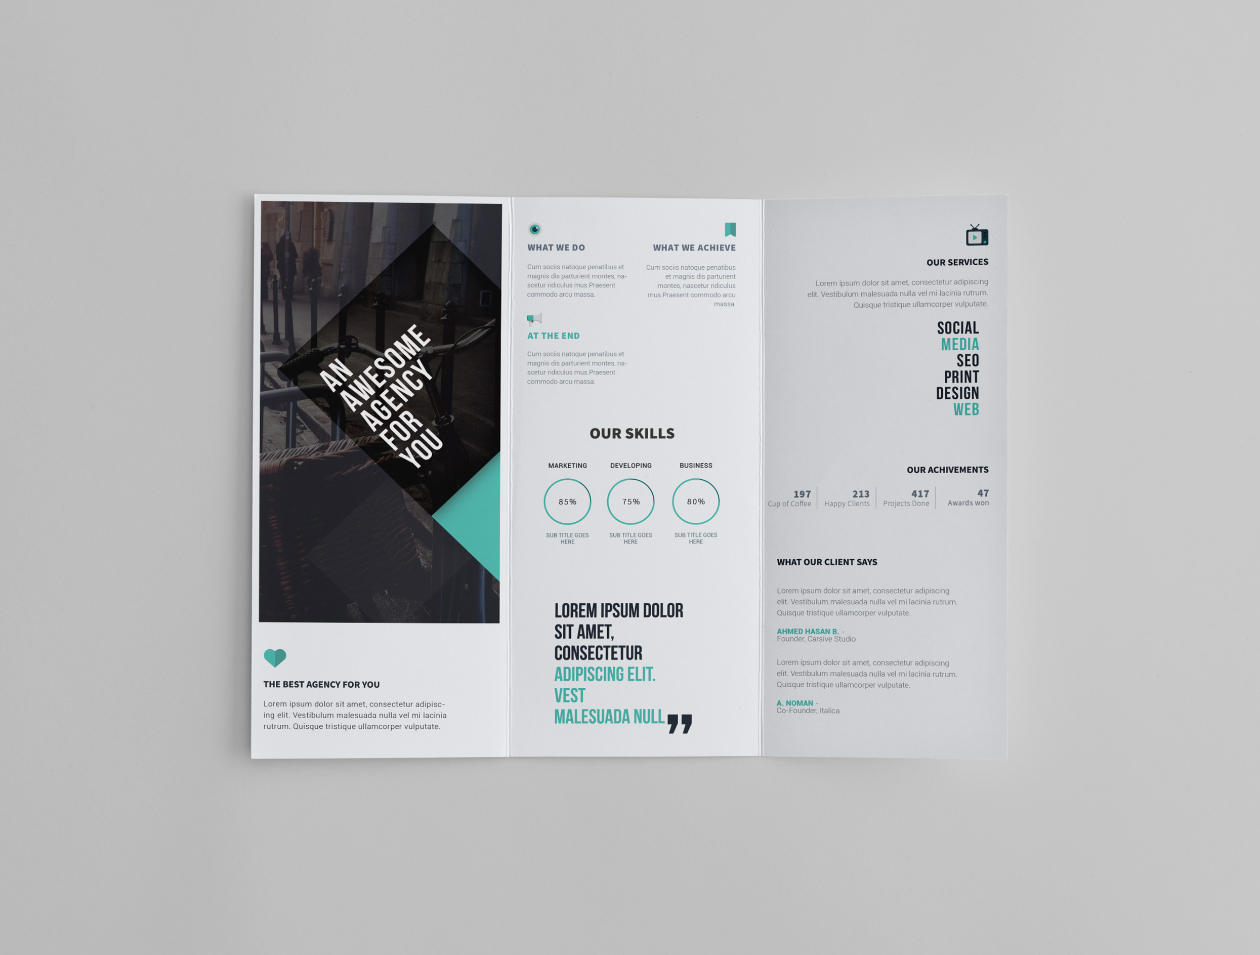 Famous 1 2 3 Nu Opgaver Kapitel Resume Huge 1 Page Resume Templates Square 1 Week Calendar Template 1.5 Button Template Young 10 Best Resume Templates Gray100 Chart Template Tri Fold Brochure Template